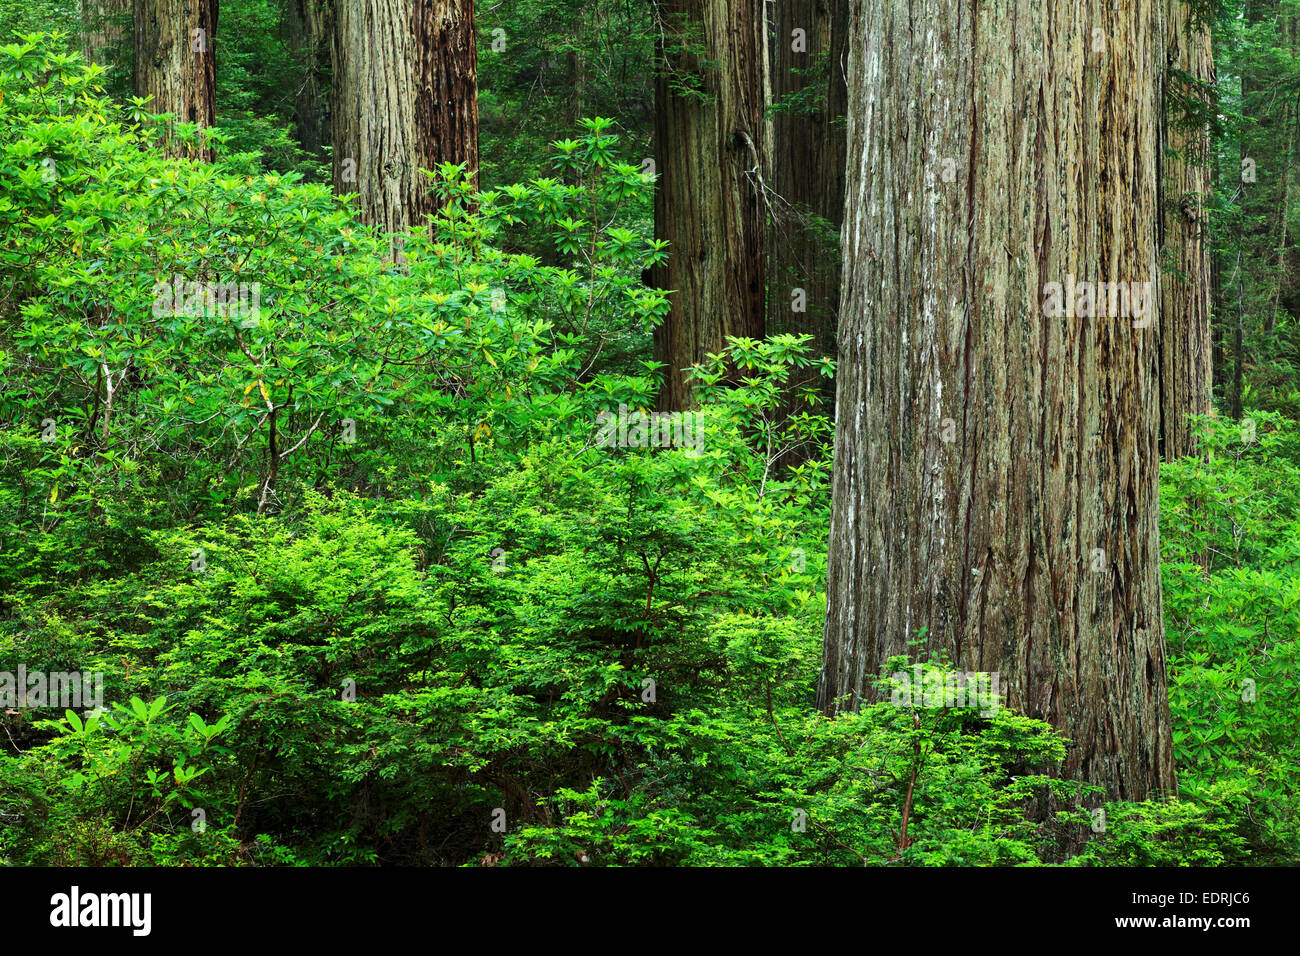 Redwood forest, Del Norte Coast Redwoods State Park, Del Norte County, California - Stock Image